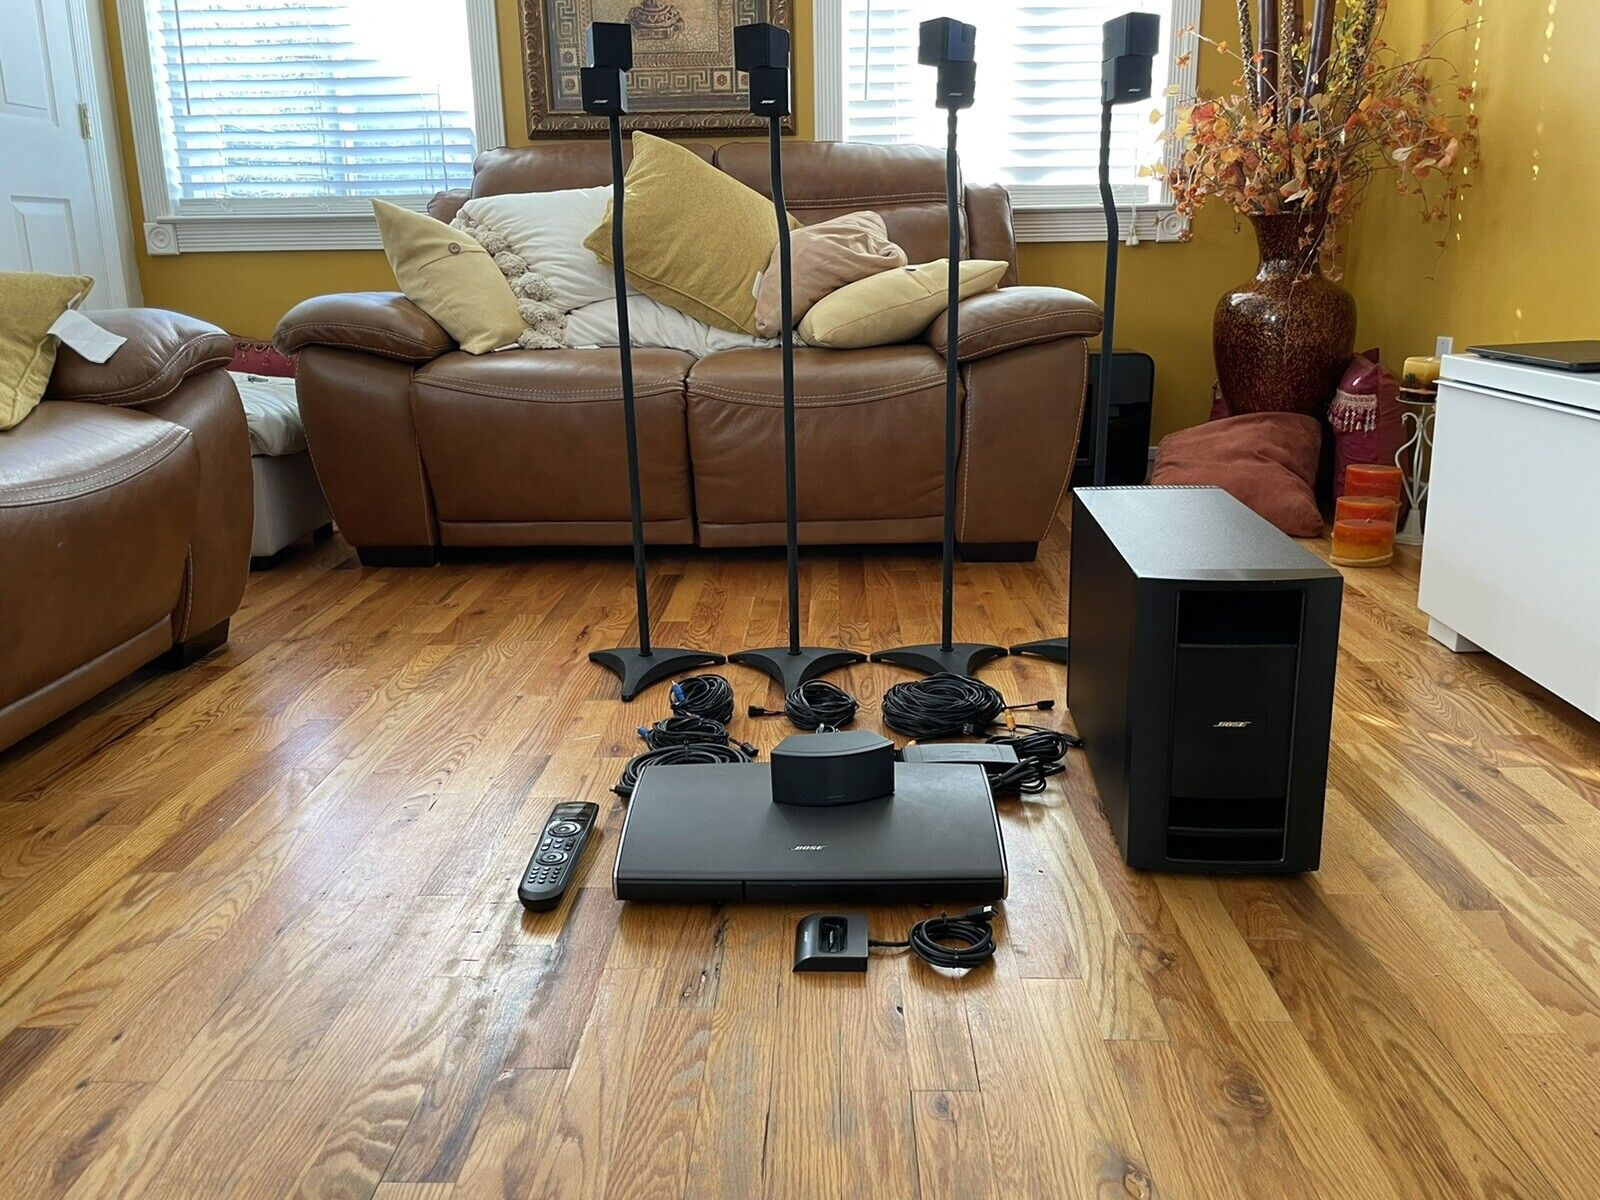 Bose Lifestyle V35 Home Theater 5.1 Surround Sound System- Black. Buy it now for 750.00